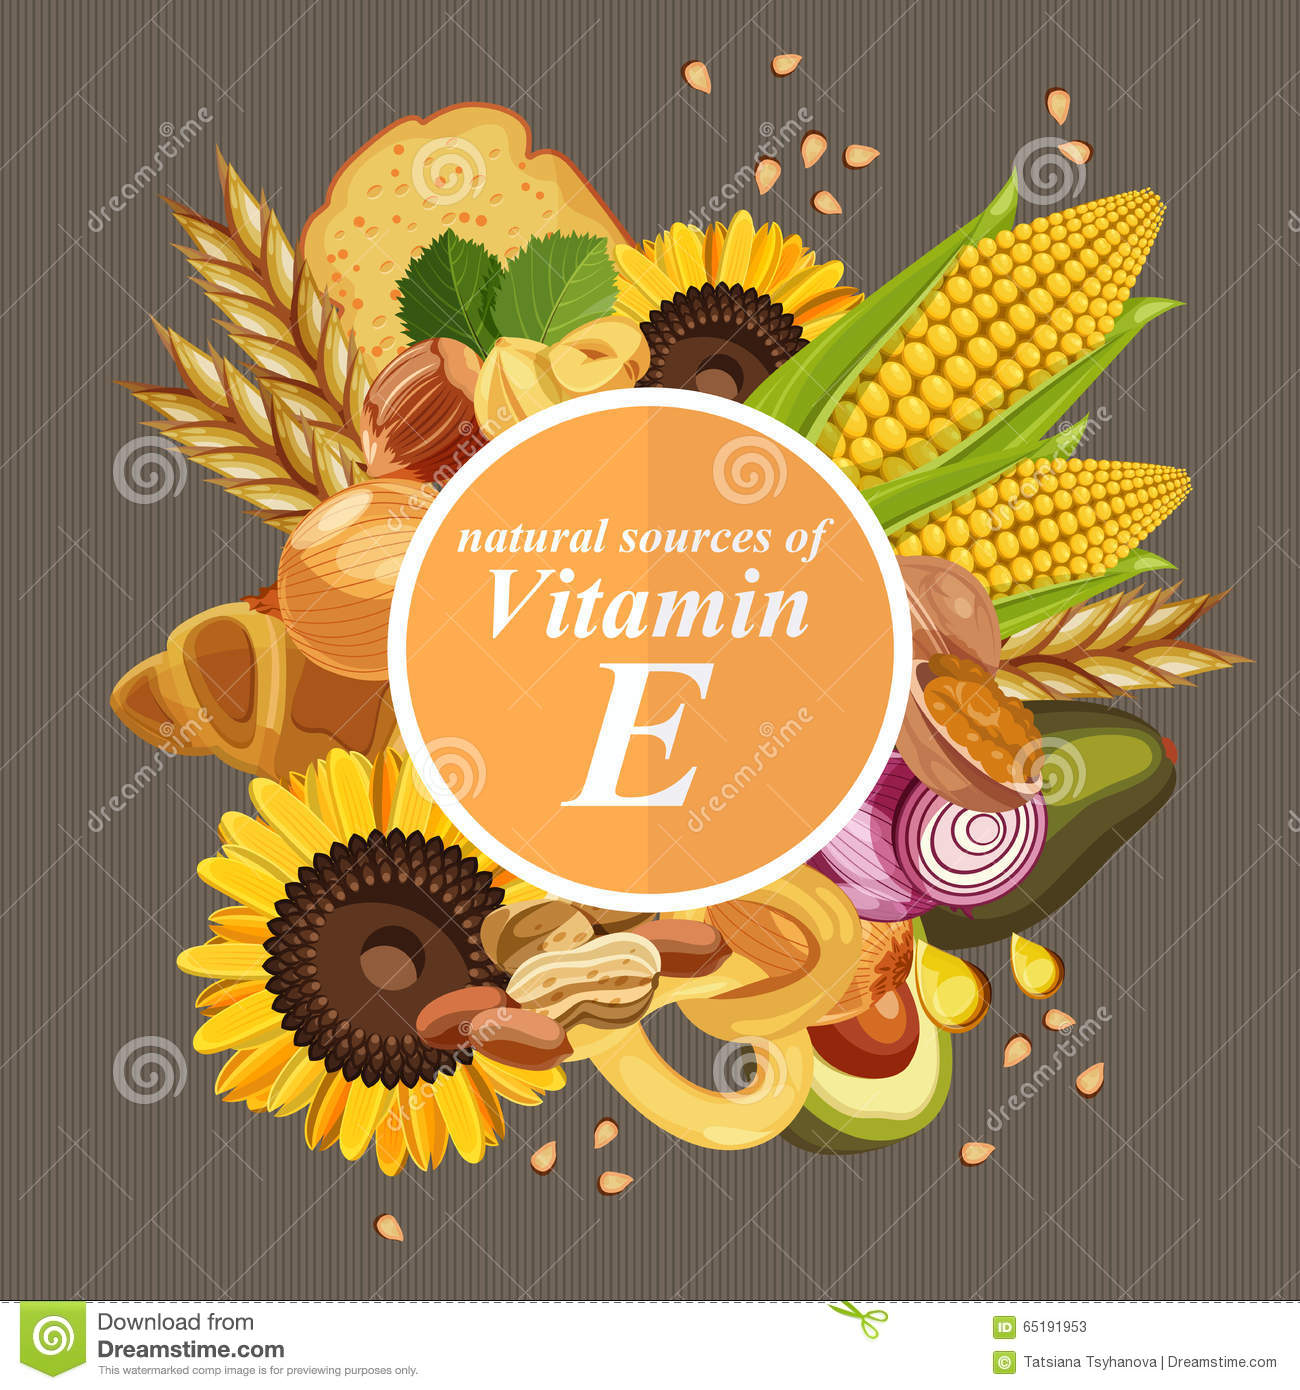 Fruits And Vegetables Containing Vitamin E Groups of healthy fruit vegetables meat fish and dairy products groups of healthy fruit vegetables meat fish and dairy products containing specific vitamins vitamin eoups of healthy fruit workwithnaturefo